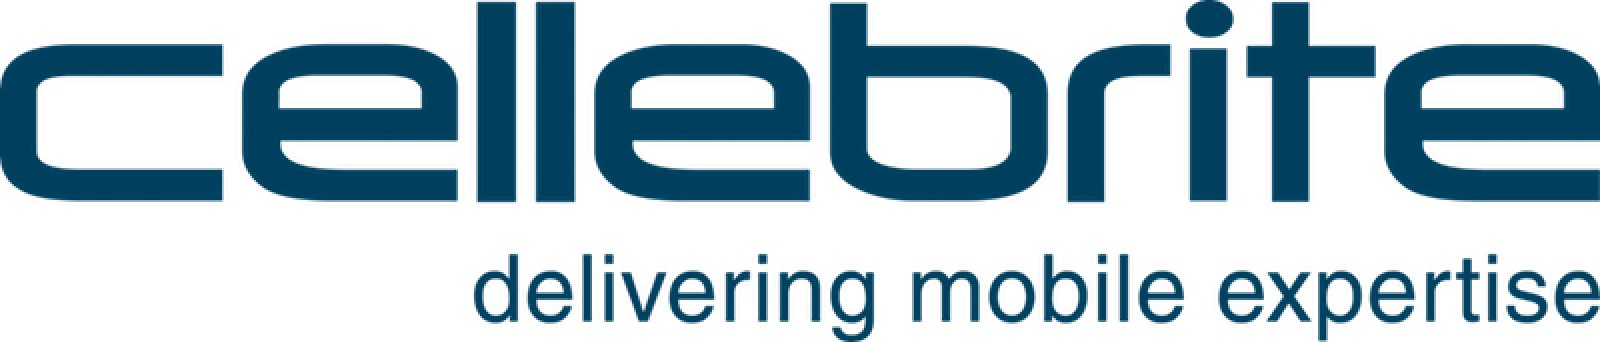 Data Extraction Company Cellebrite Touts New Software for Cracking